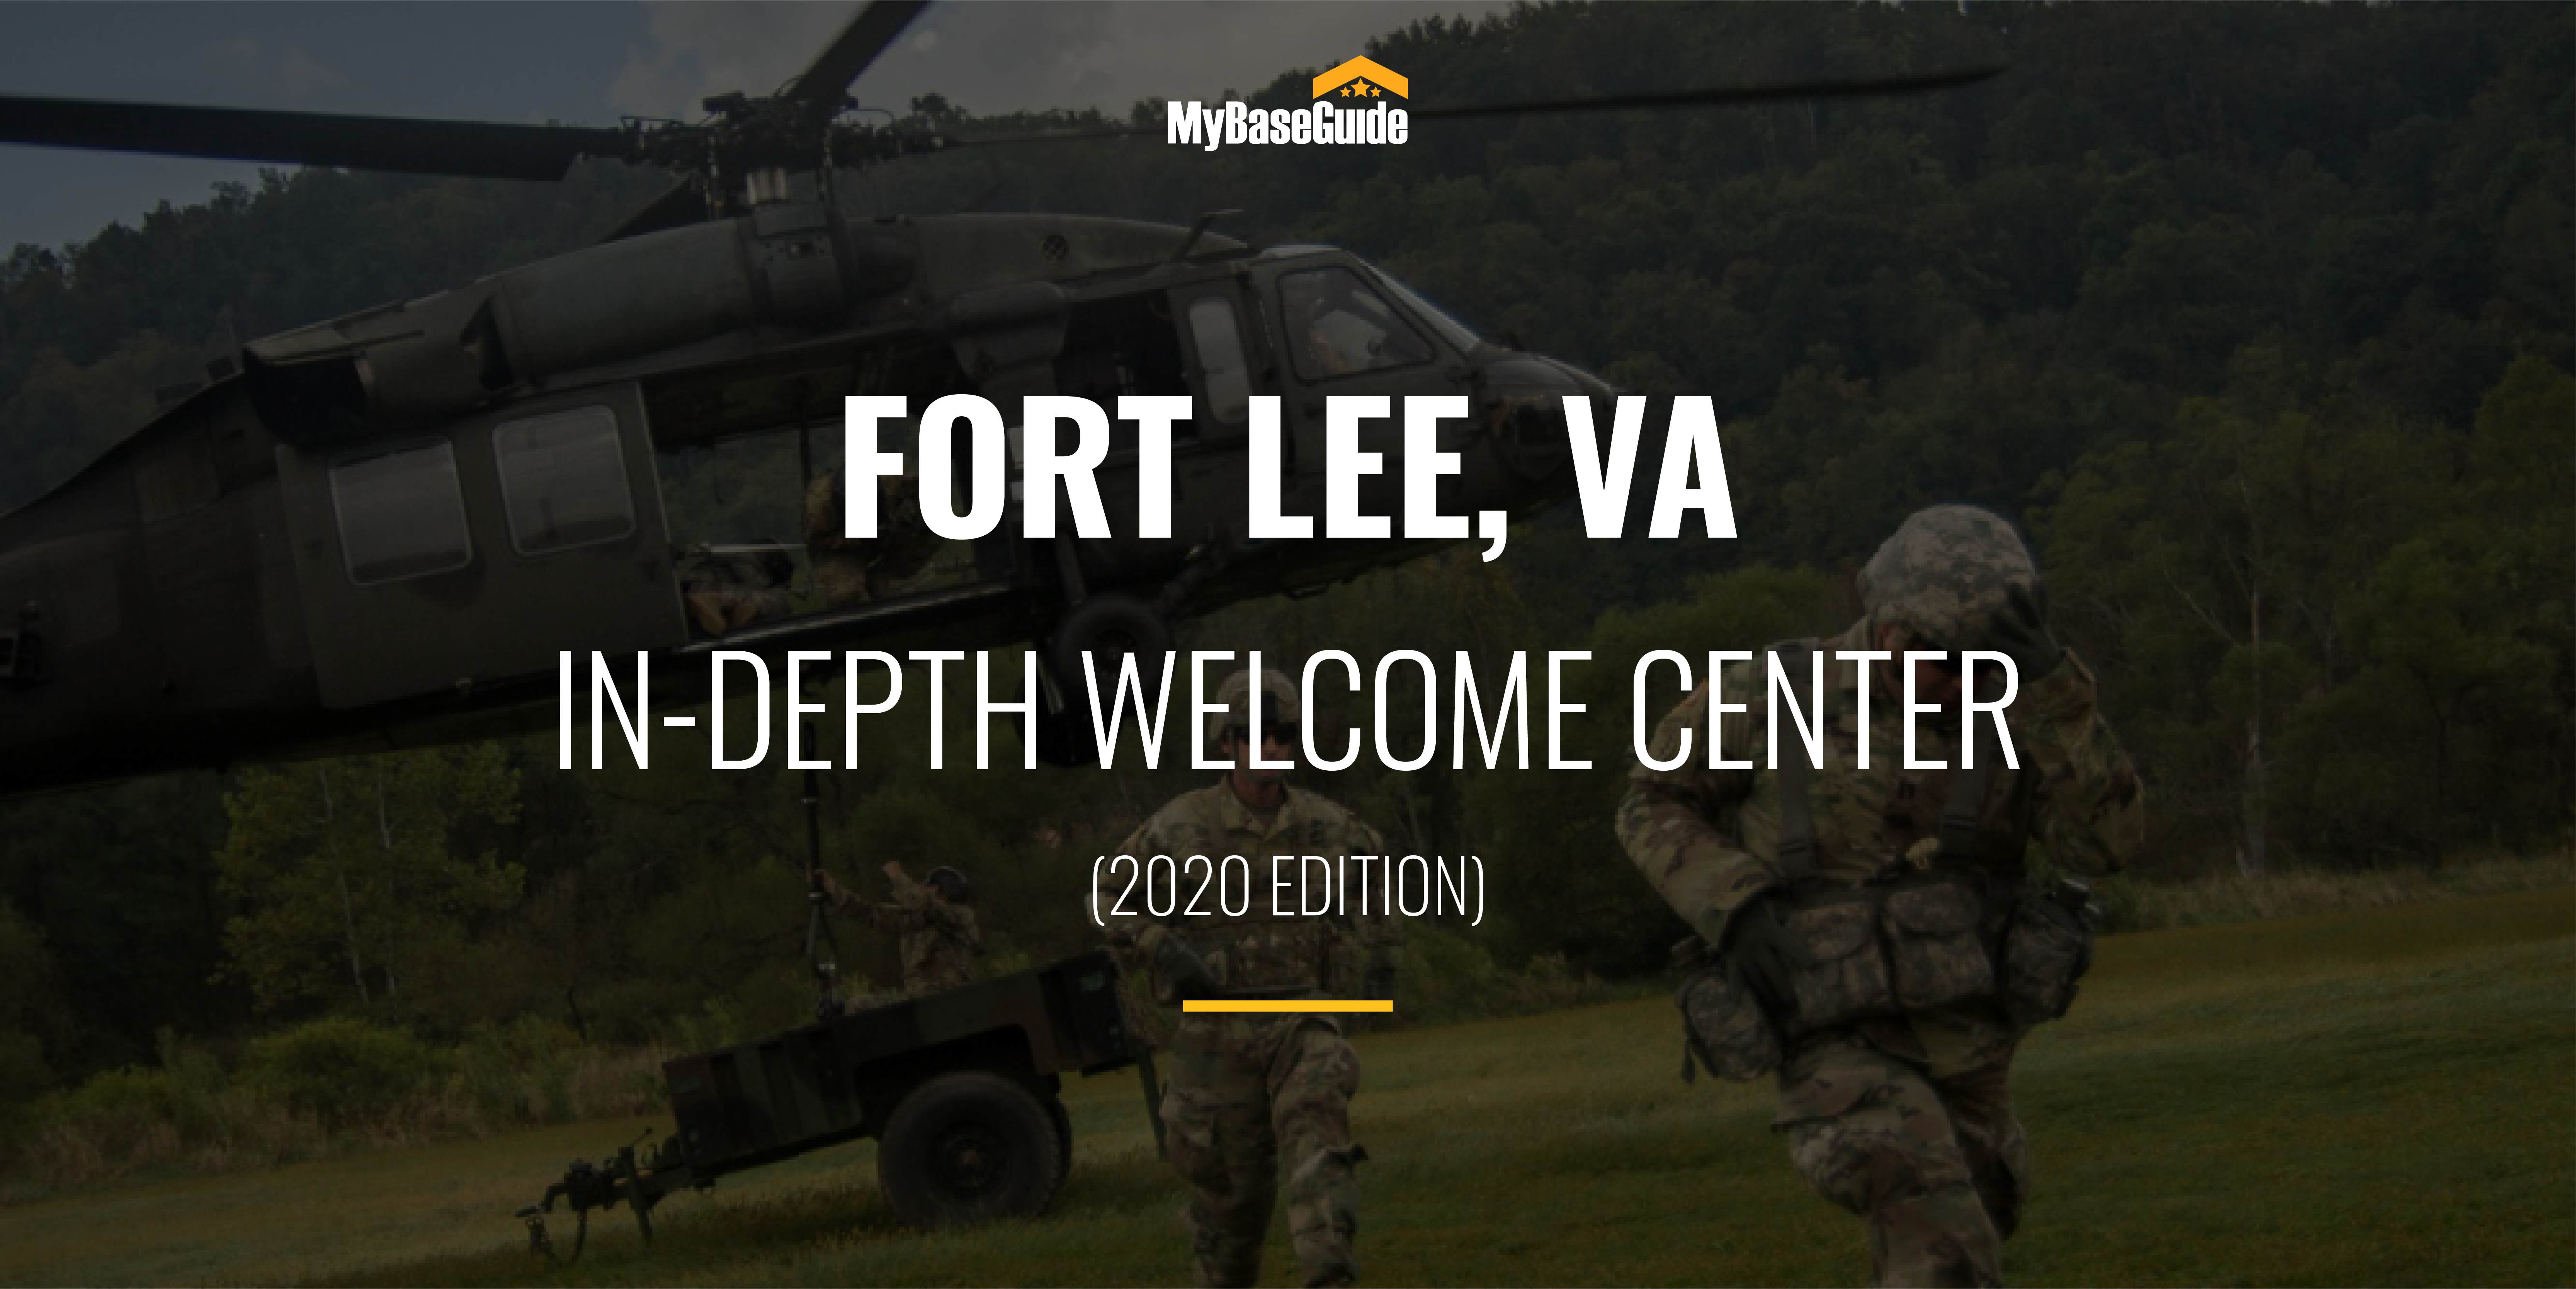 Fort Lee Virginia: In-Depth Welcome Center